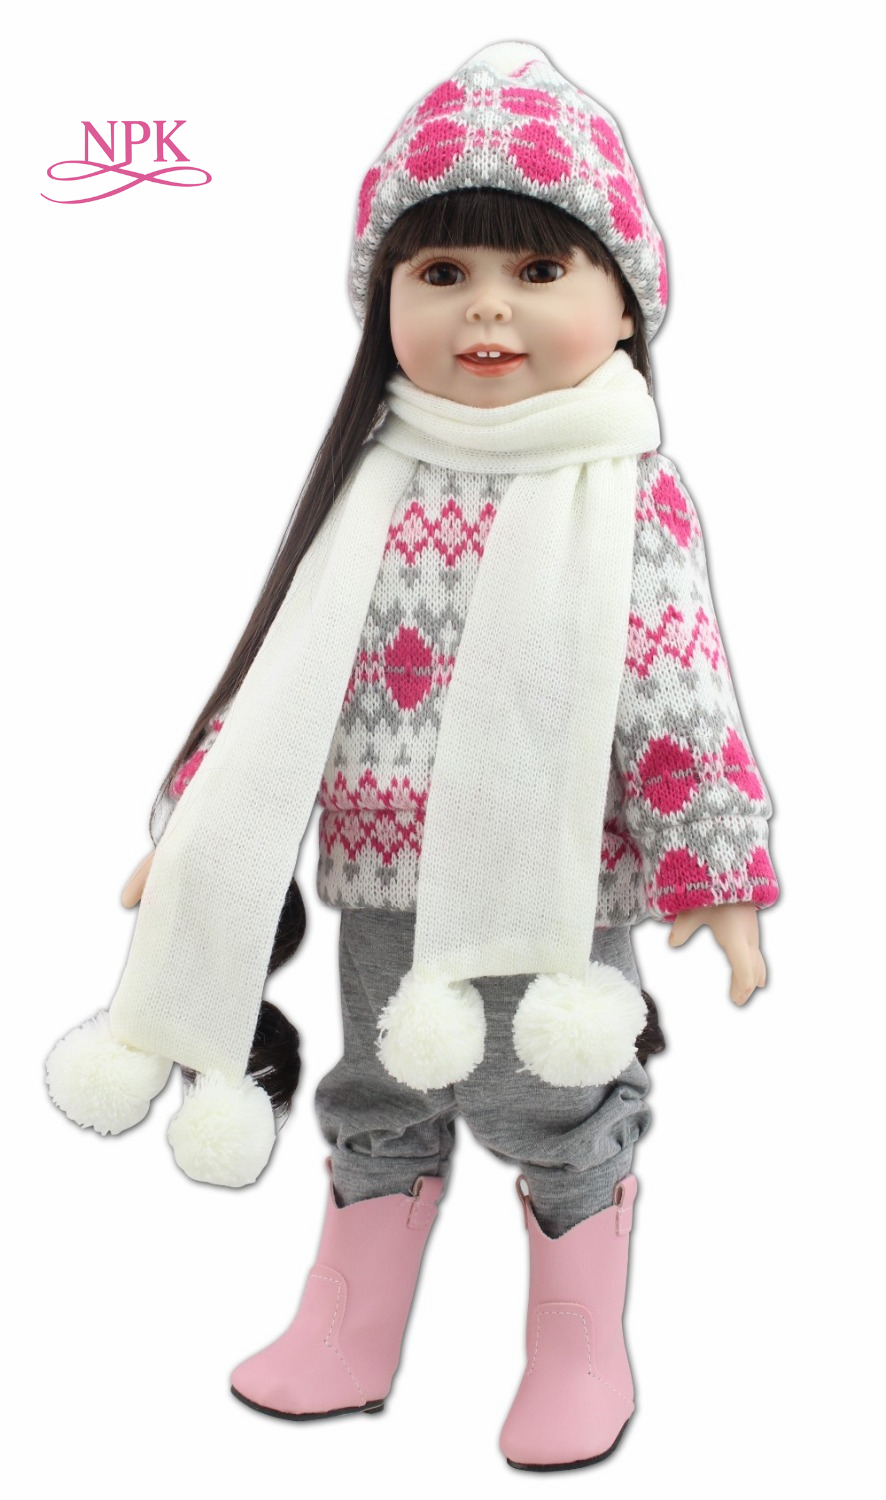 NPK 18inches fashion popular doll winter suit fashion play doll education toy for kids christmas gifts